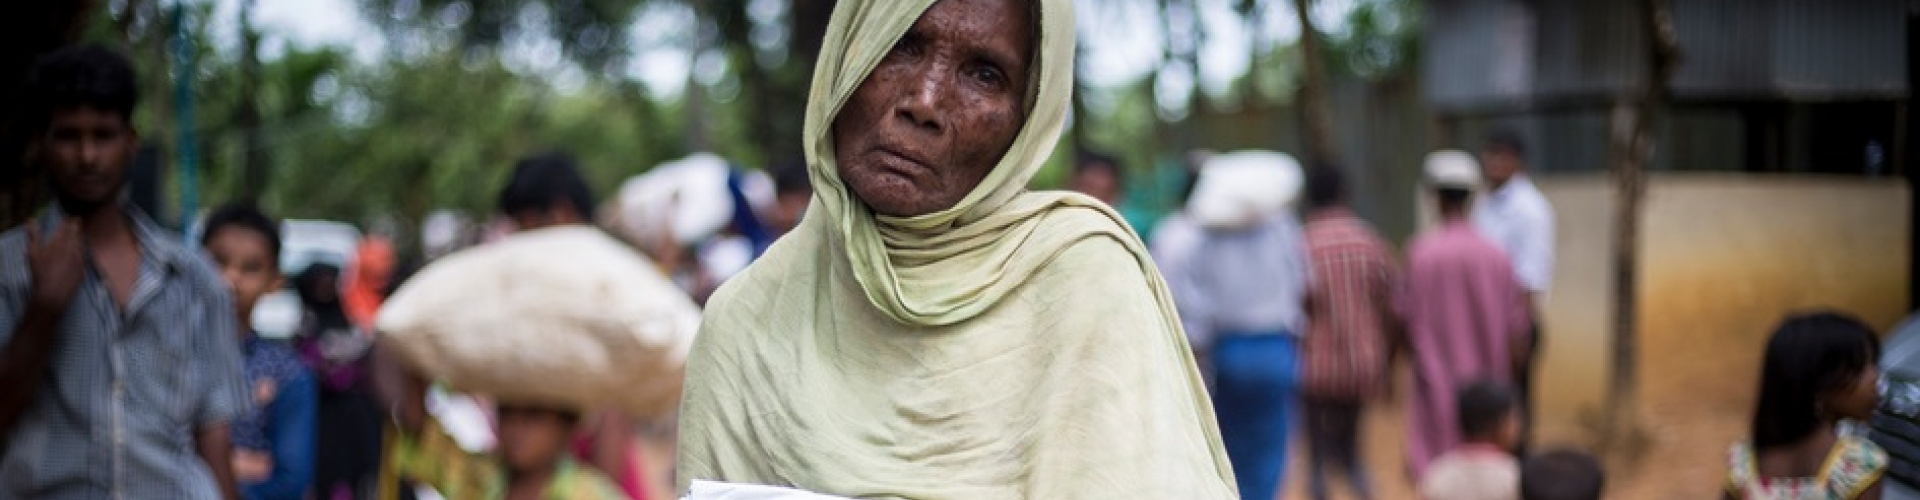 Moving refugees out of the rain in Bangladesh